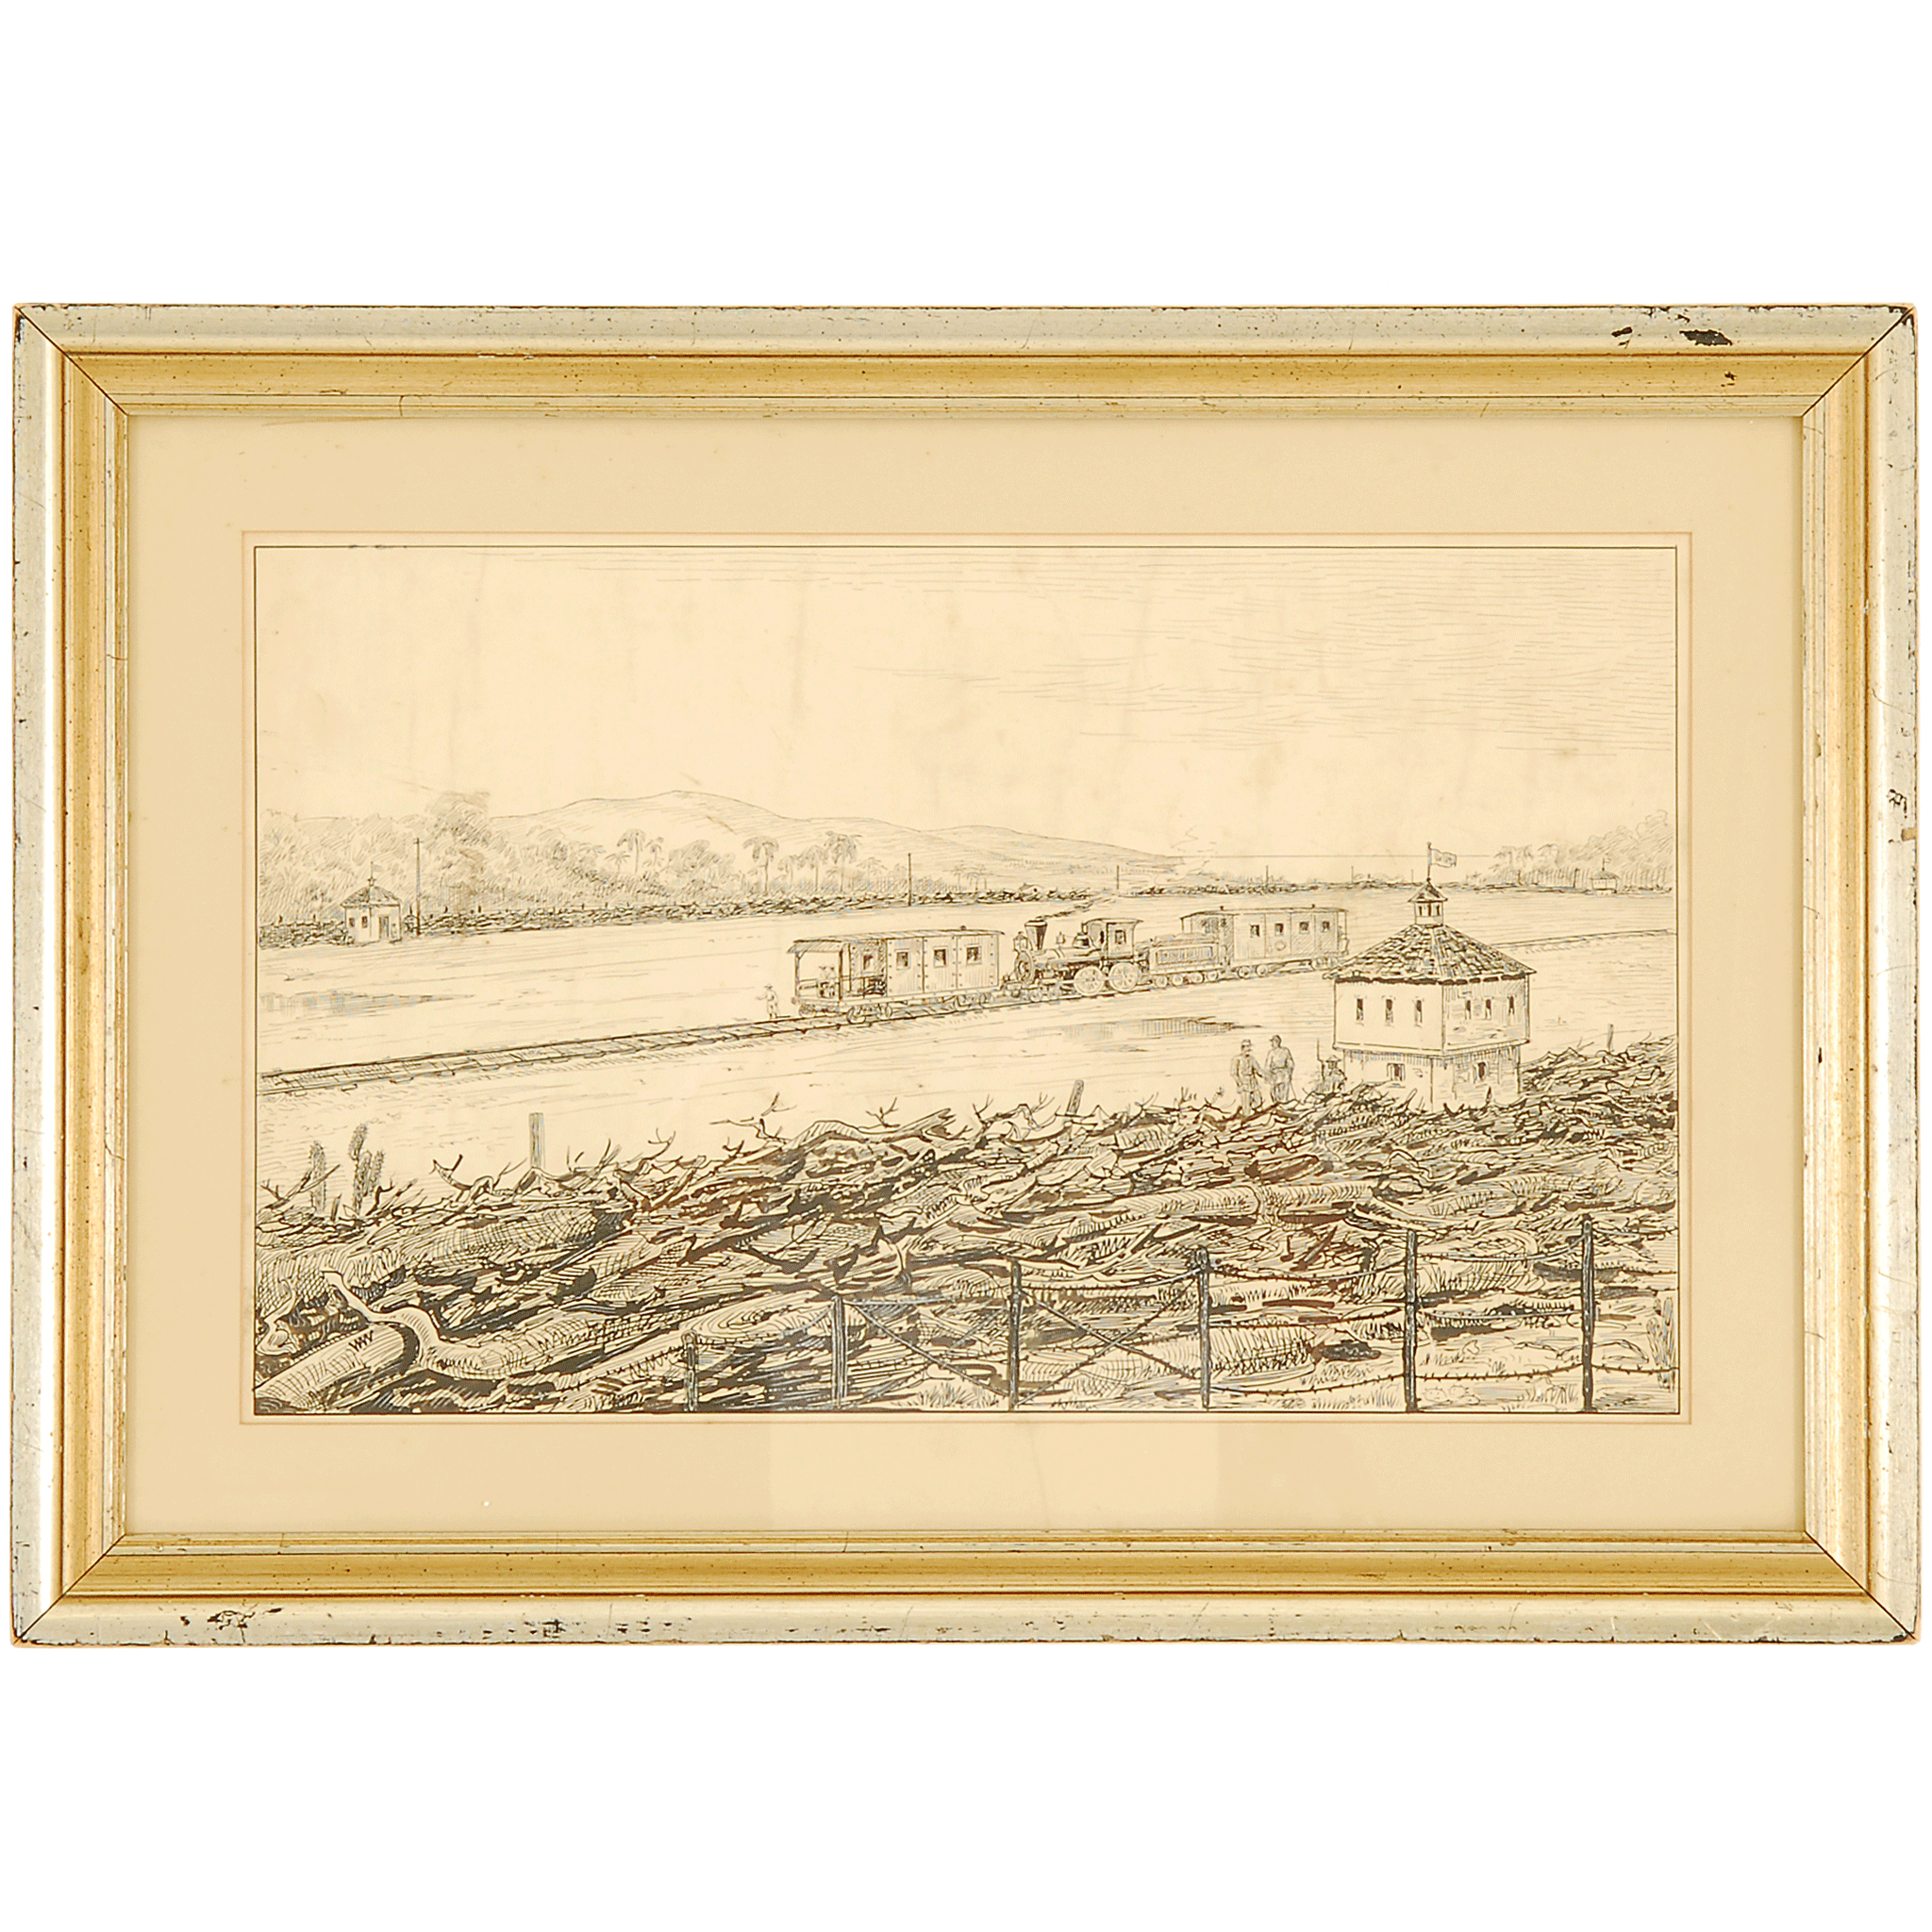 Pen and Ink Sketch of Civil War Scene by William Aiken Walker